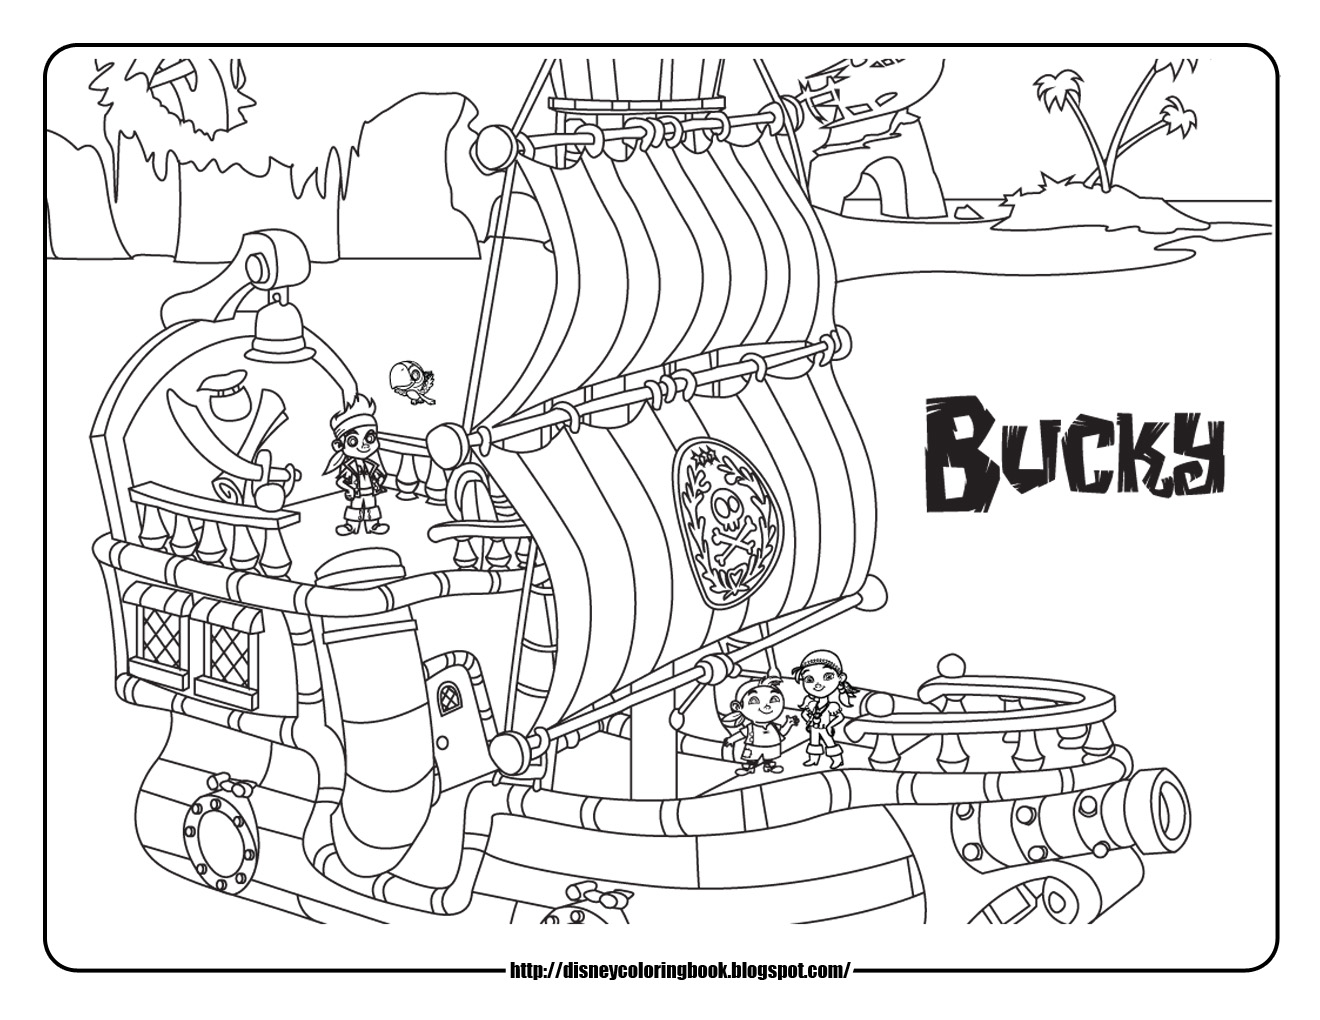 Jake and the neverland pirates 2 free disney coloring for Coloring pages of pirates